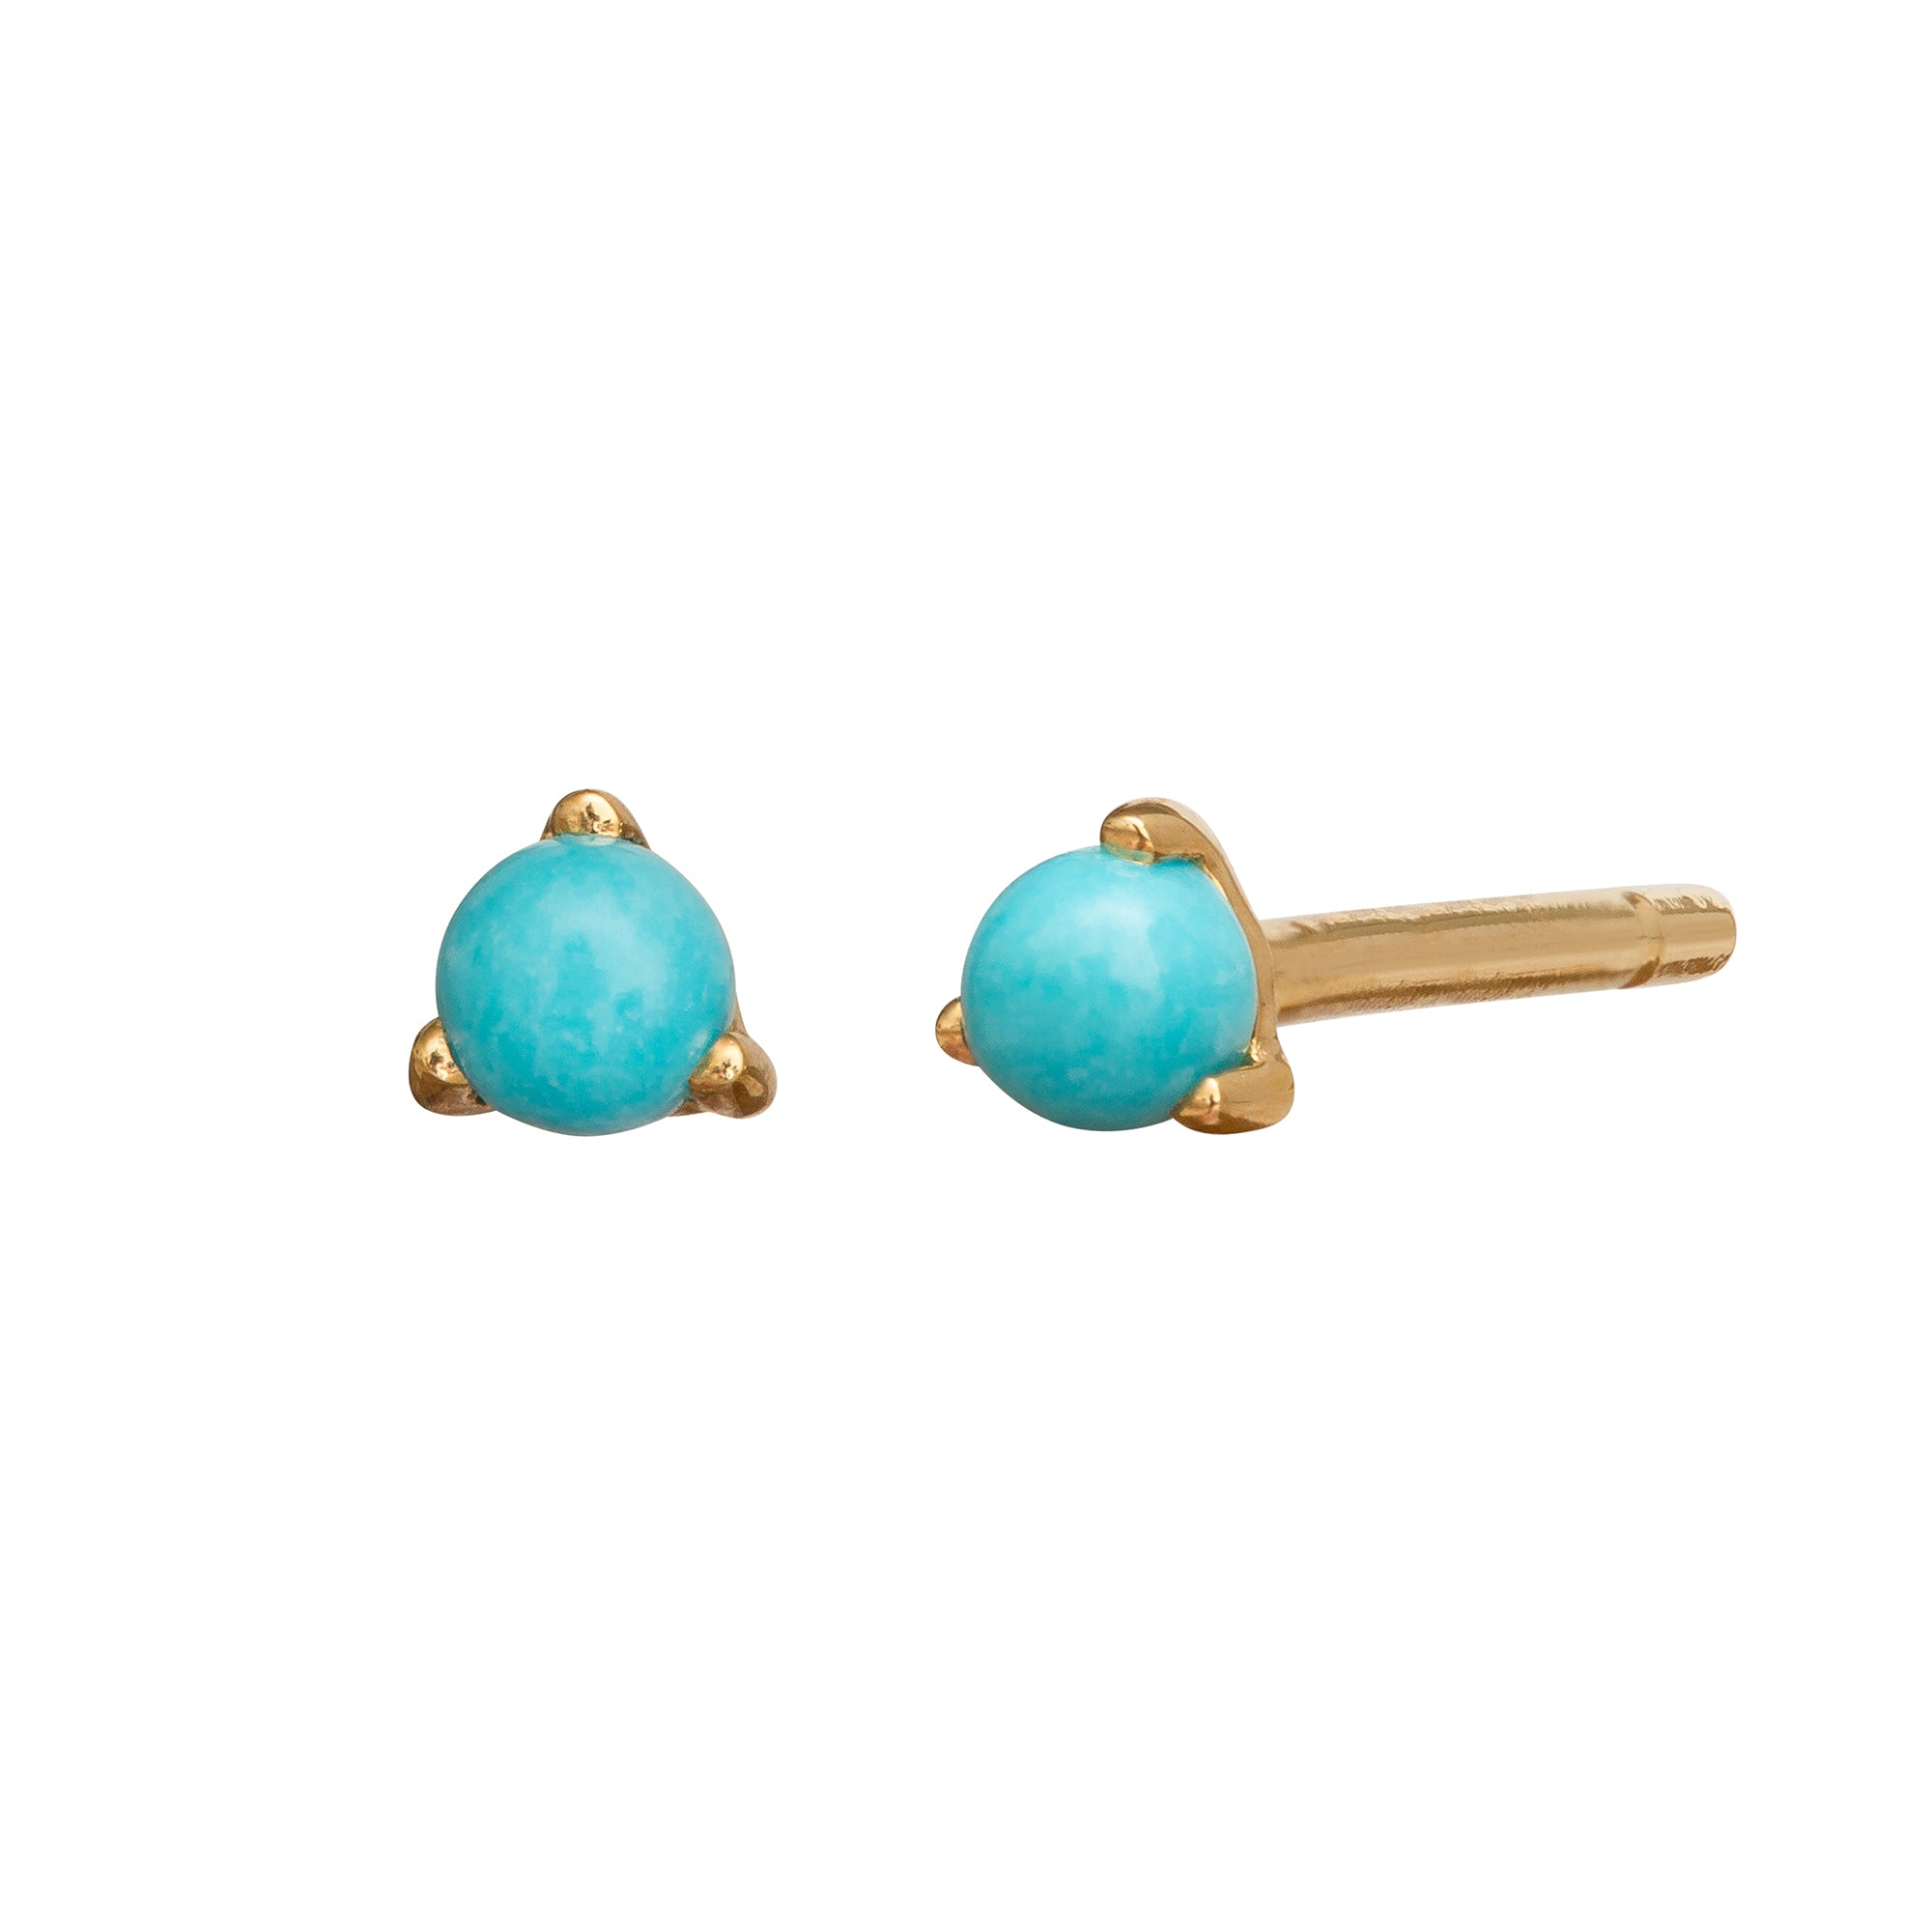 Turquoise Dot Studs by Rosa de la Cruz for Broken English Jewelry